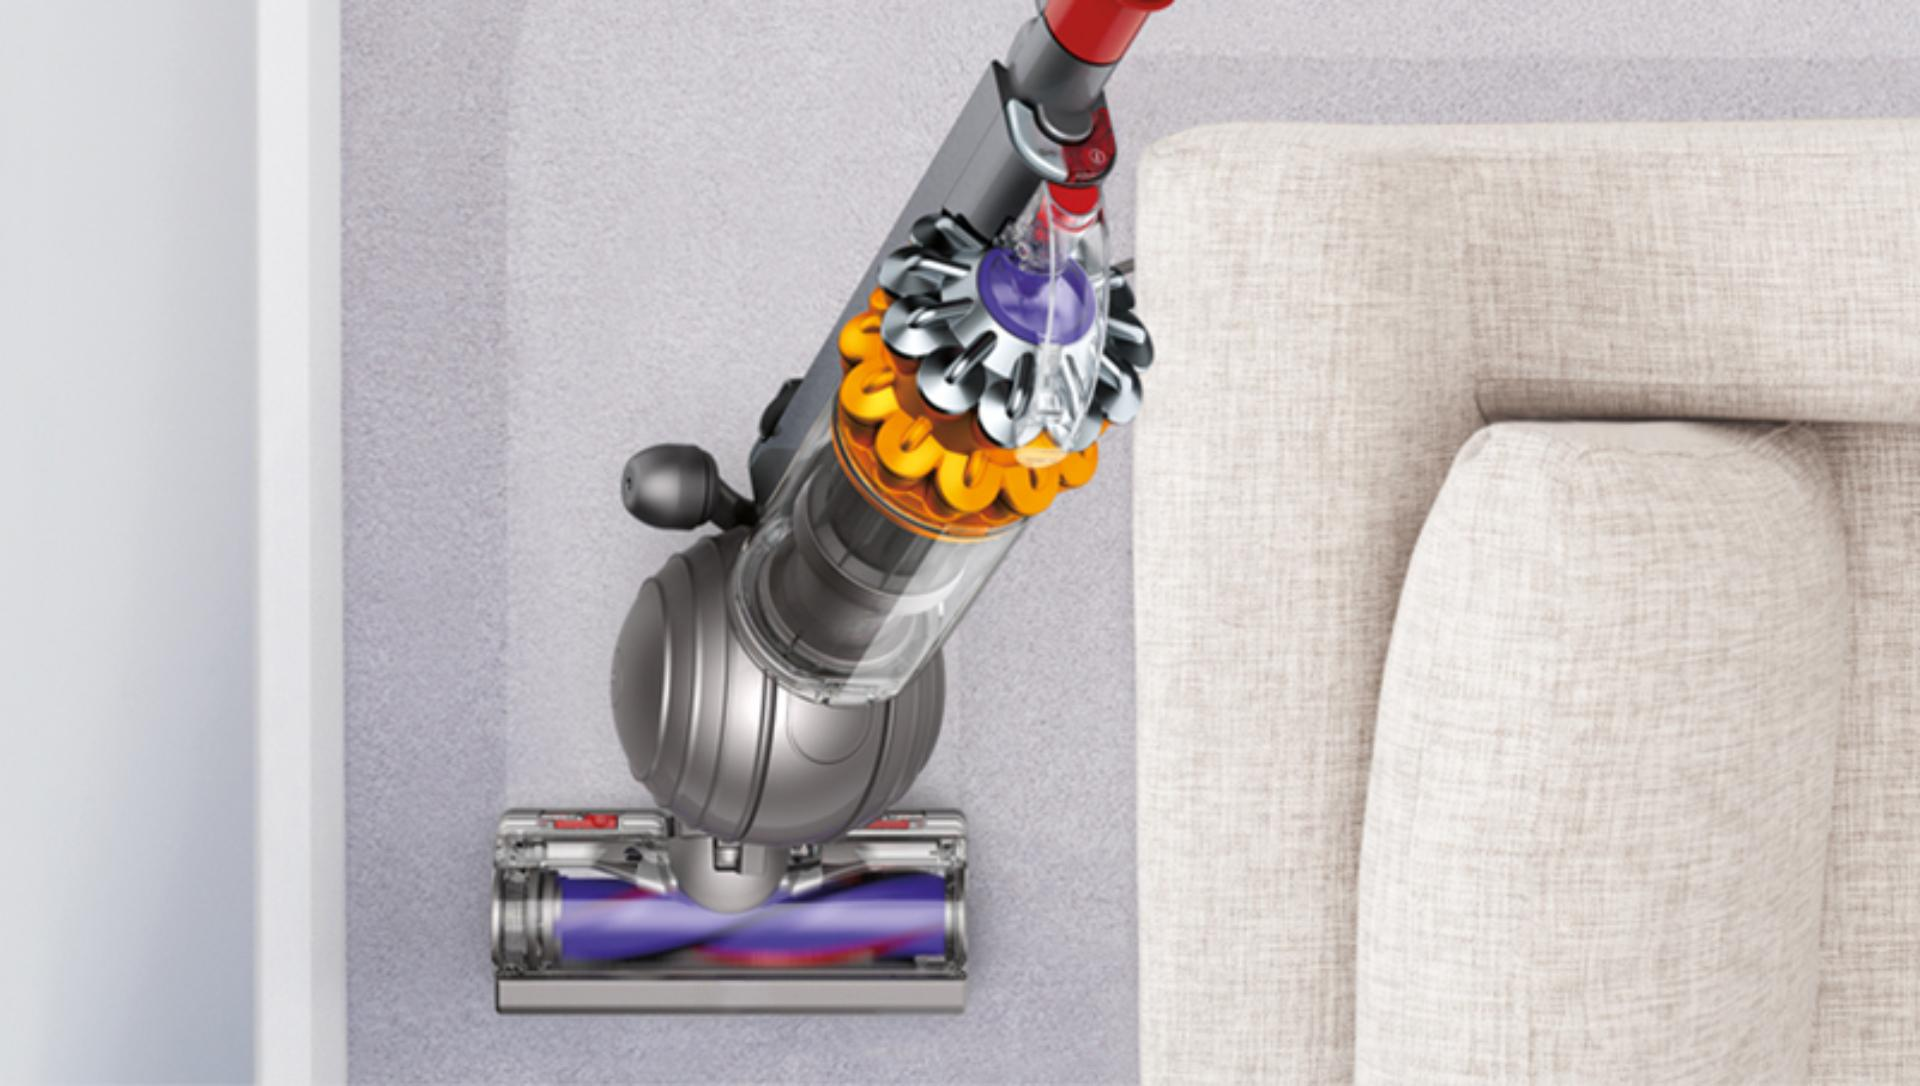 A ball steering mechanism means you can easily maneuver the Dyson Small Ball vacuum around corners.